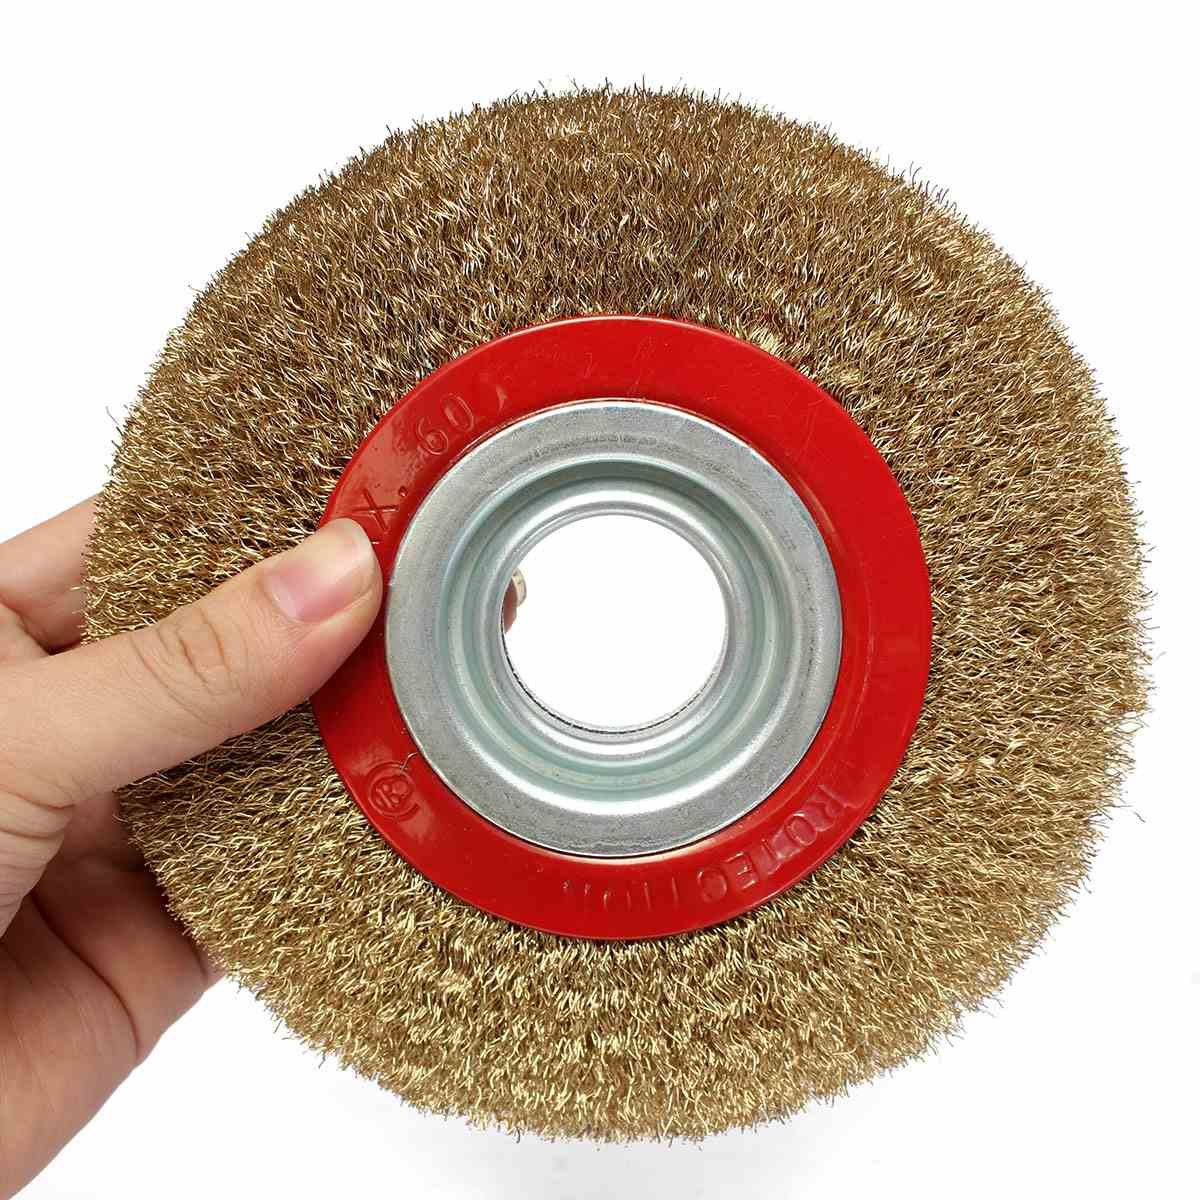 Top Selling 1PC 6 Inch 150mm Steel Flat Wire Wheel Brush with 10pcs Adaptor Rings For Bench Grinder Polish Best Quality